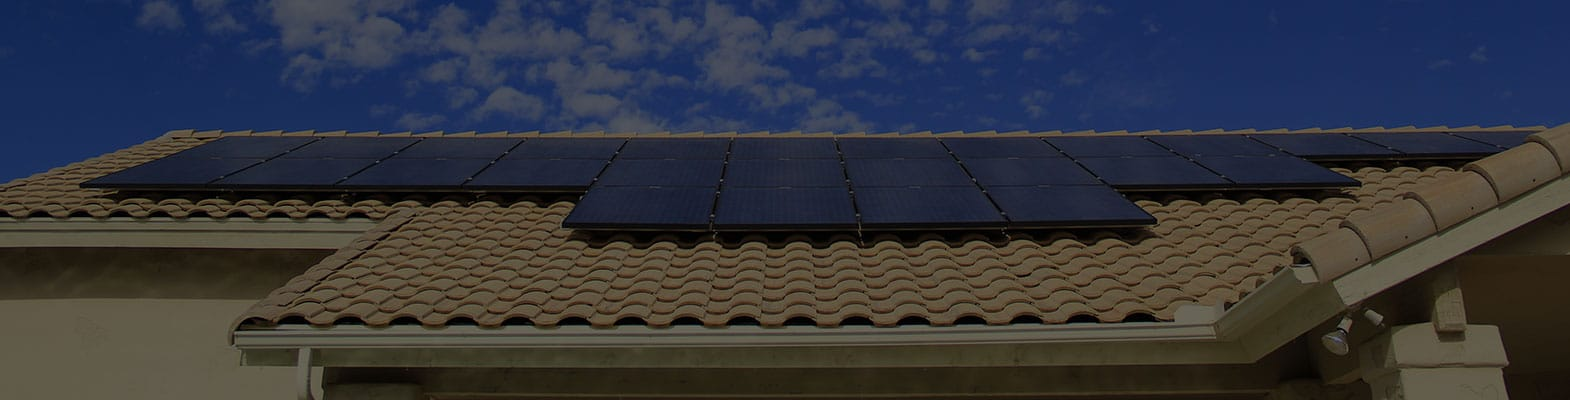 residential solar and electrical services